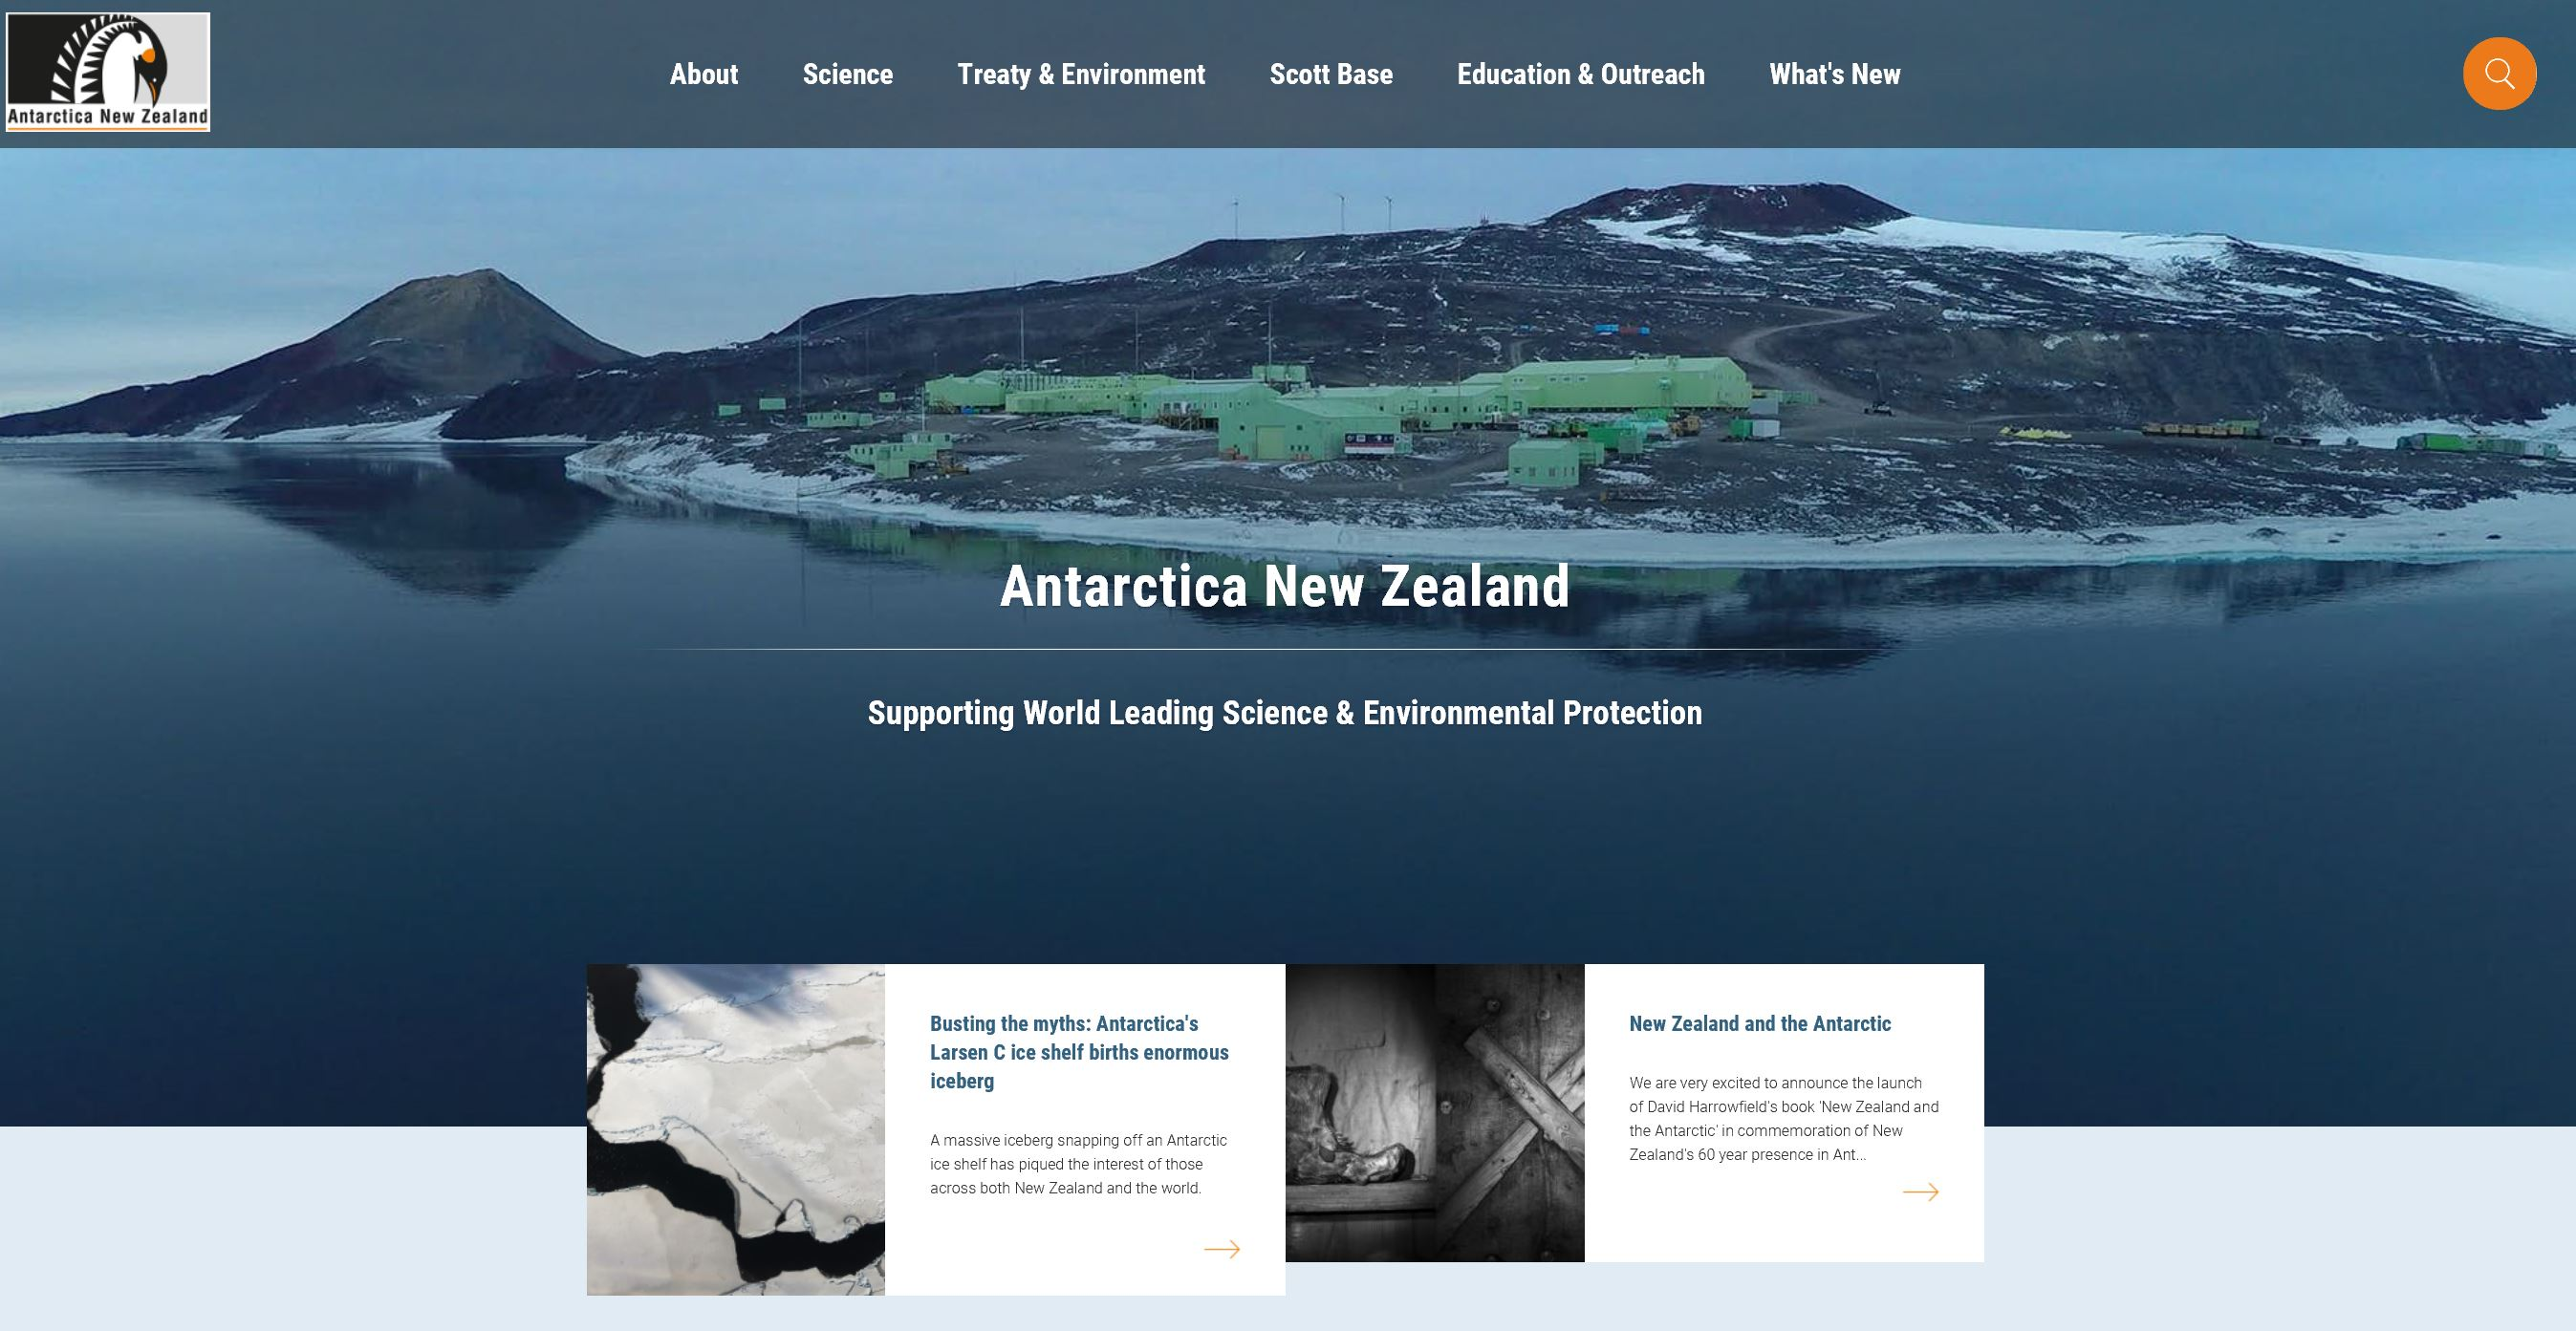 Antarctica New Zealand – Supporting World Leading Science & Environmental Protection